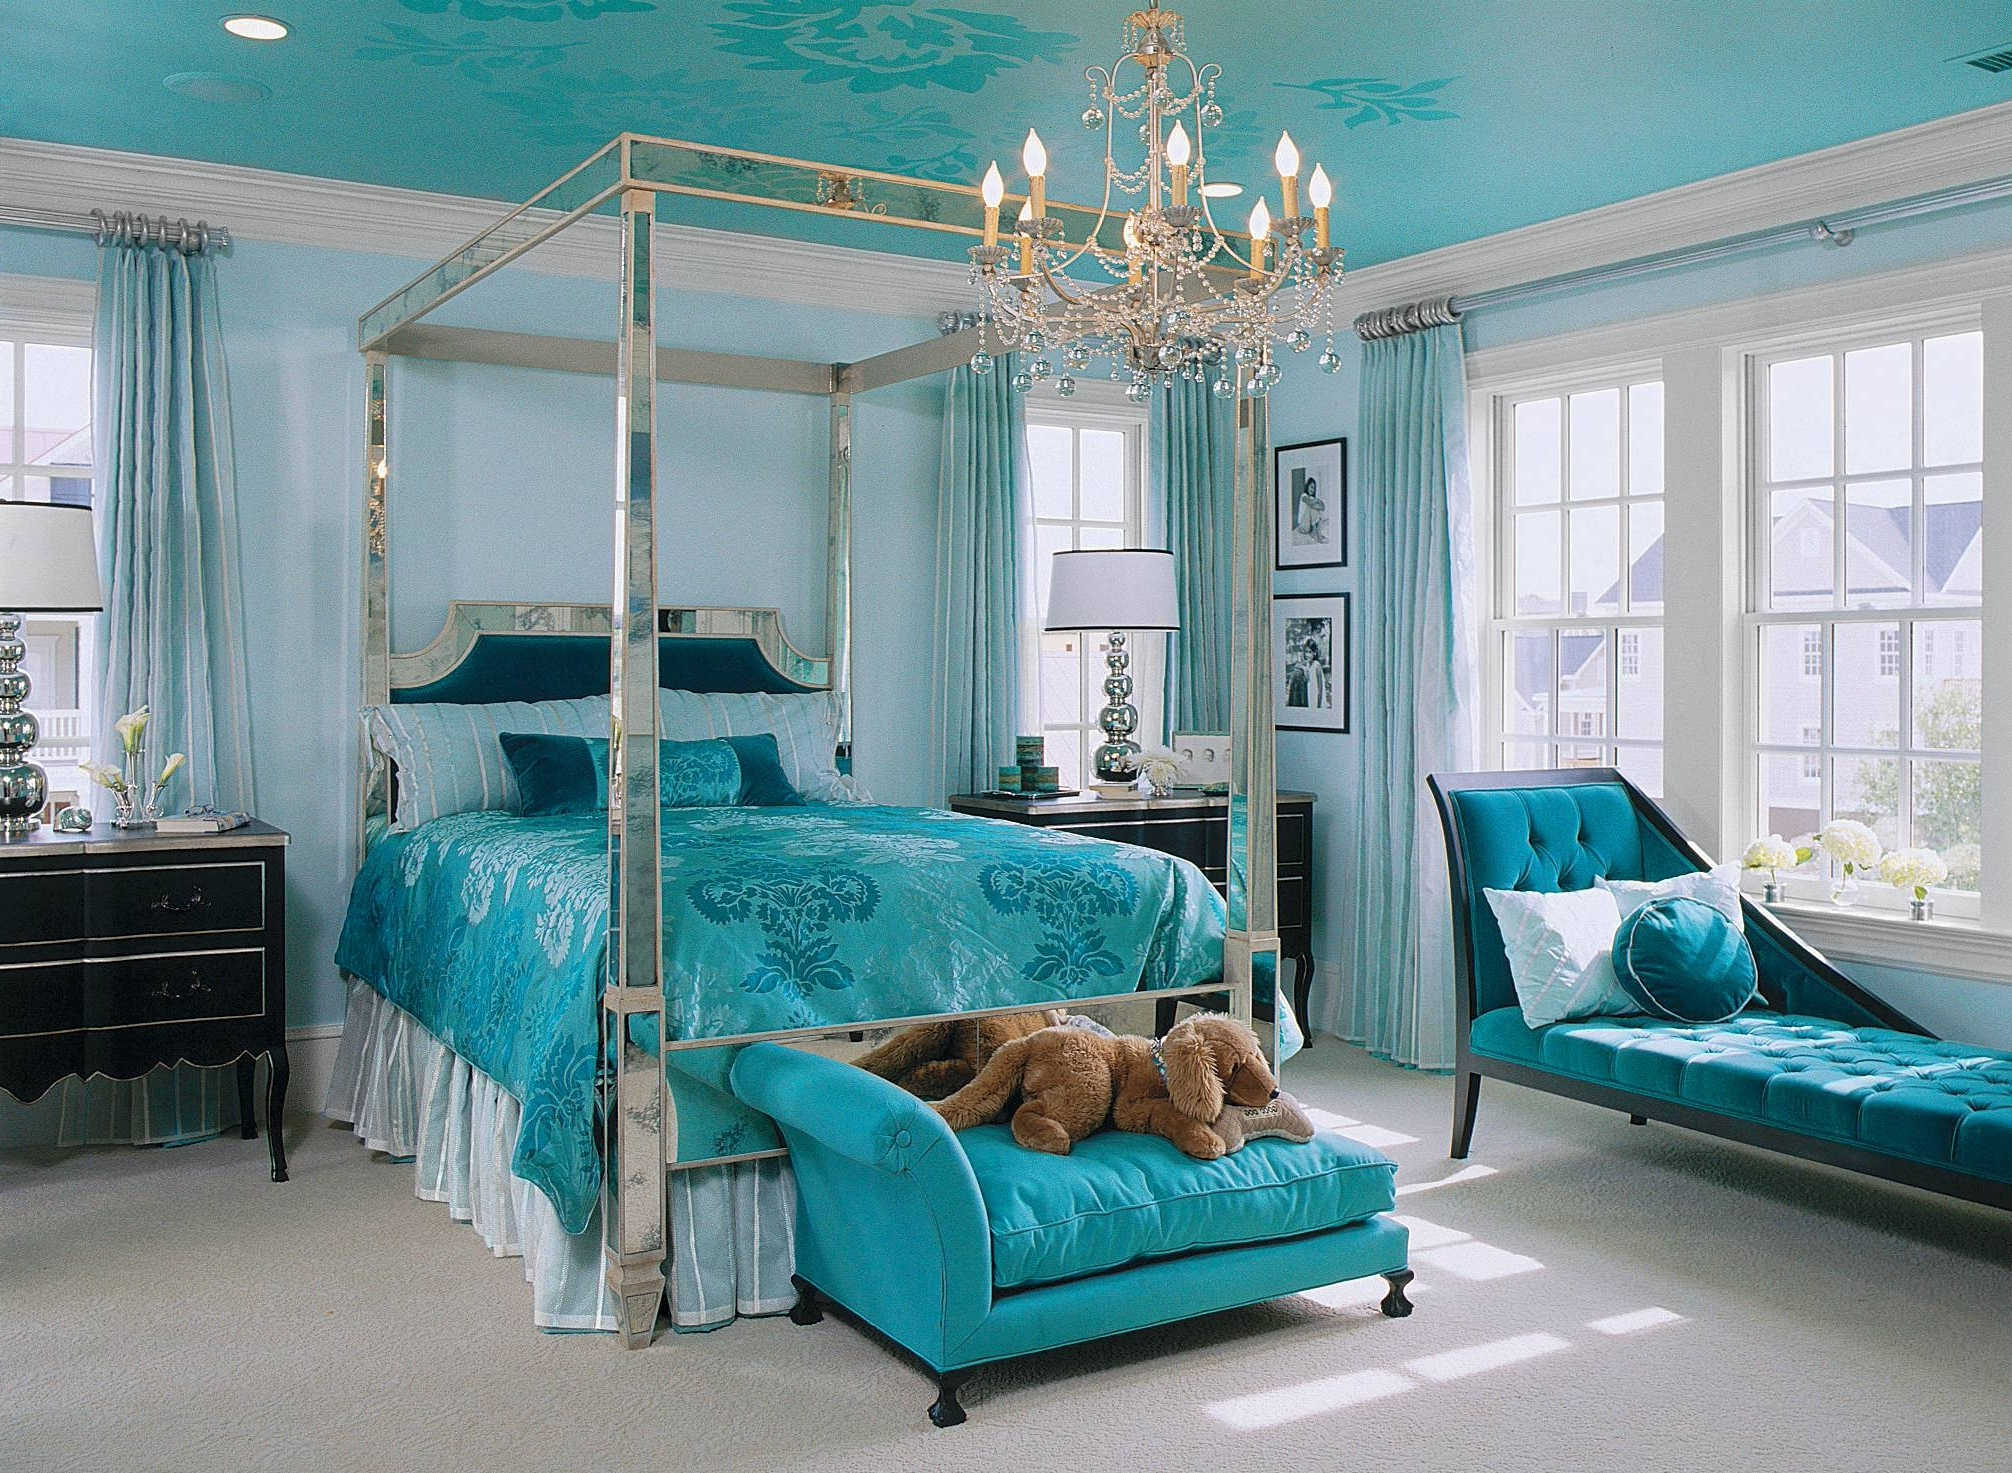 Bedroom: Turquoise Room Ideas For Modern Bedroom Design Idea With Recent Turquoise Bedroom Chandeliers (View 3 of 20)